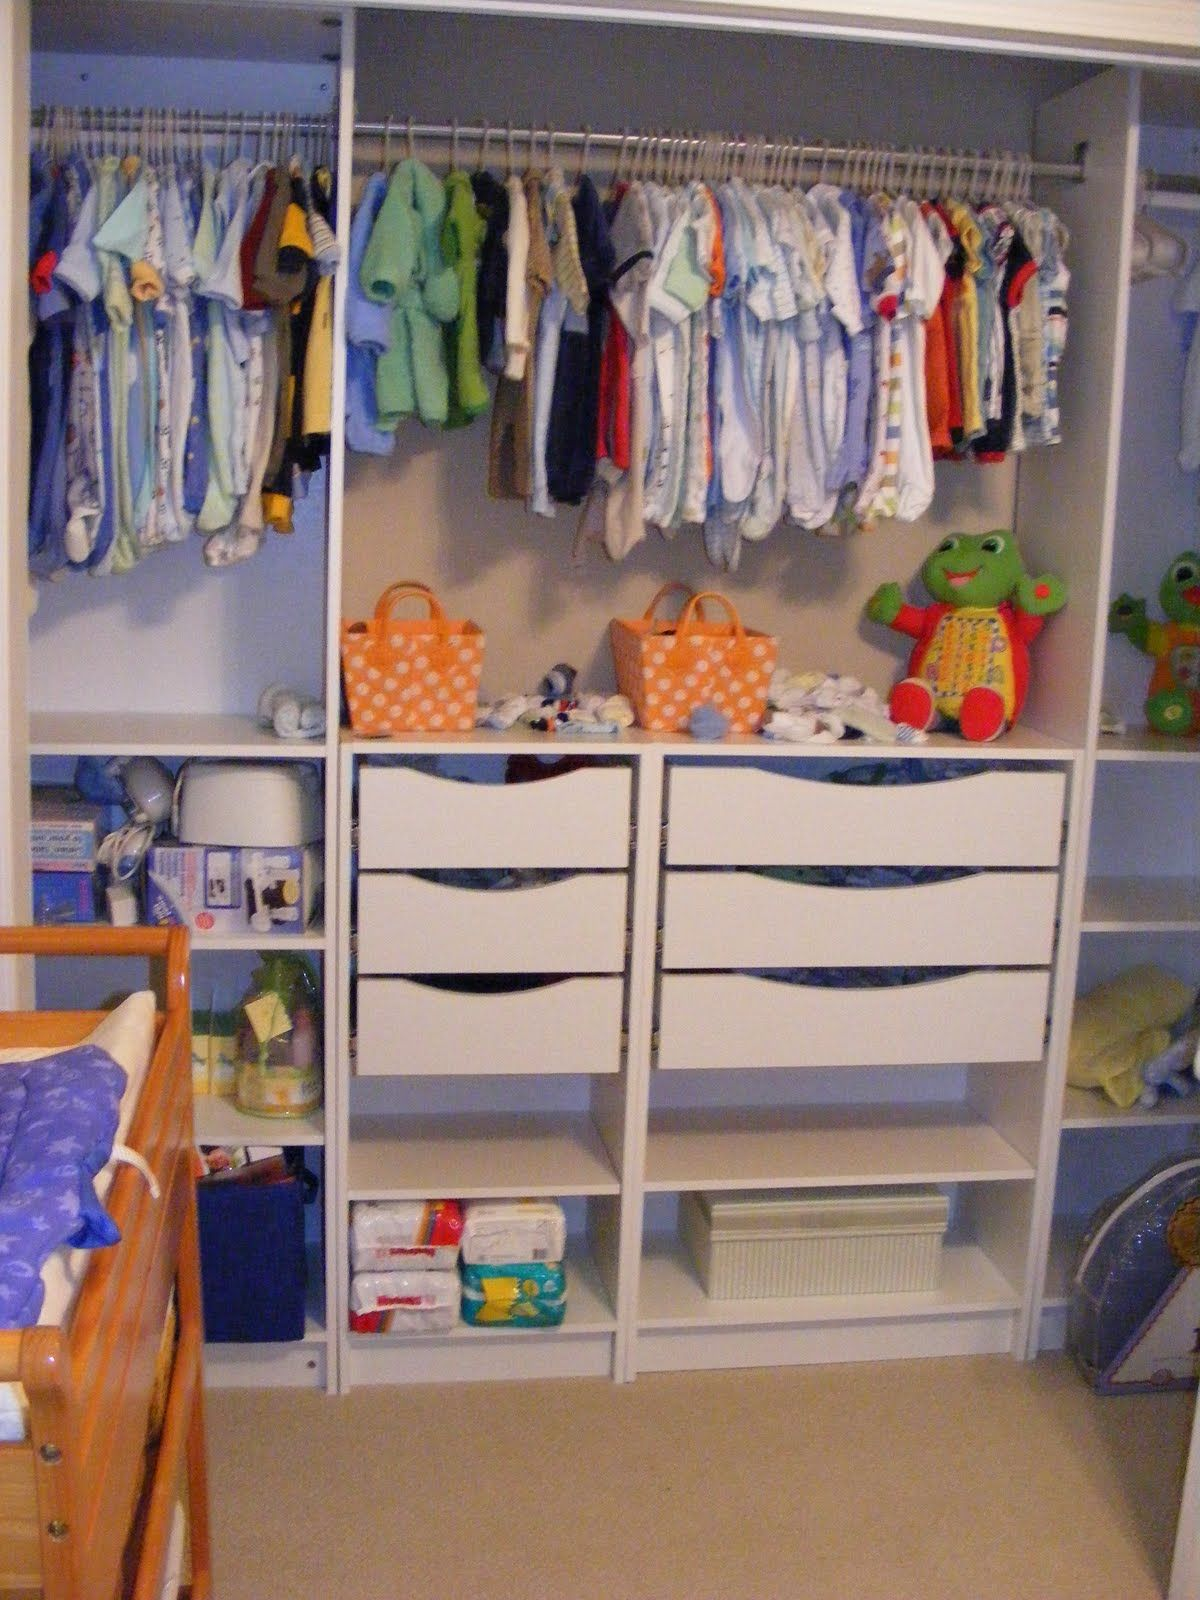 Ordinaire Kids Closet Ikea. Build Your Own Walk In Closet. Been Slowly Making One For